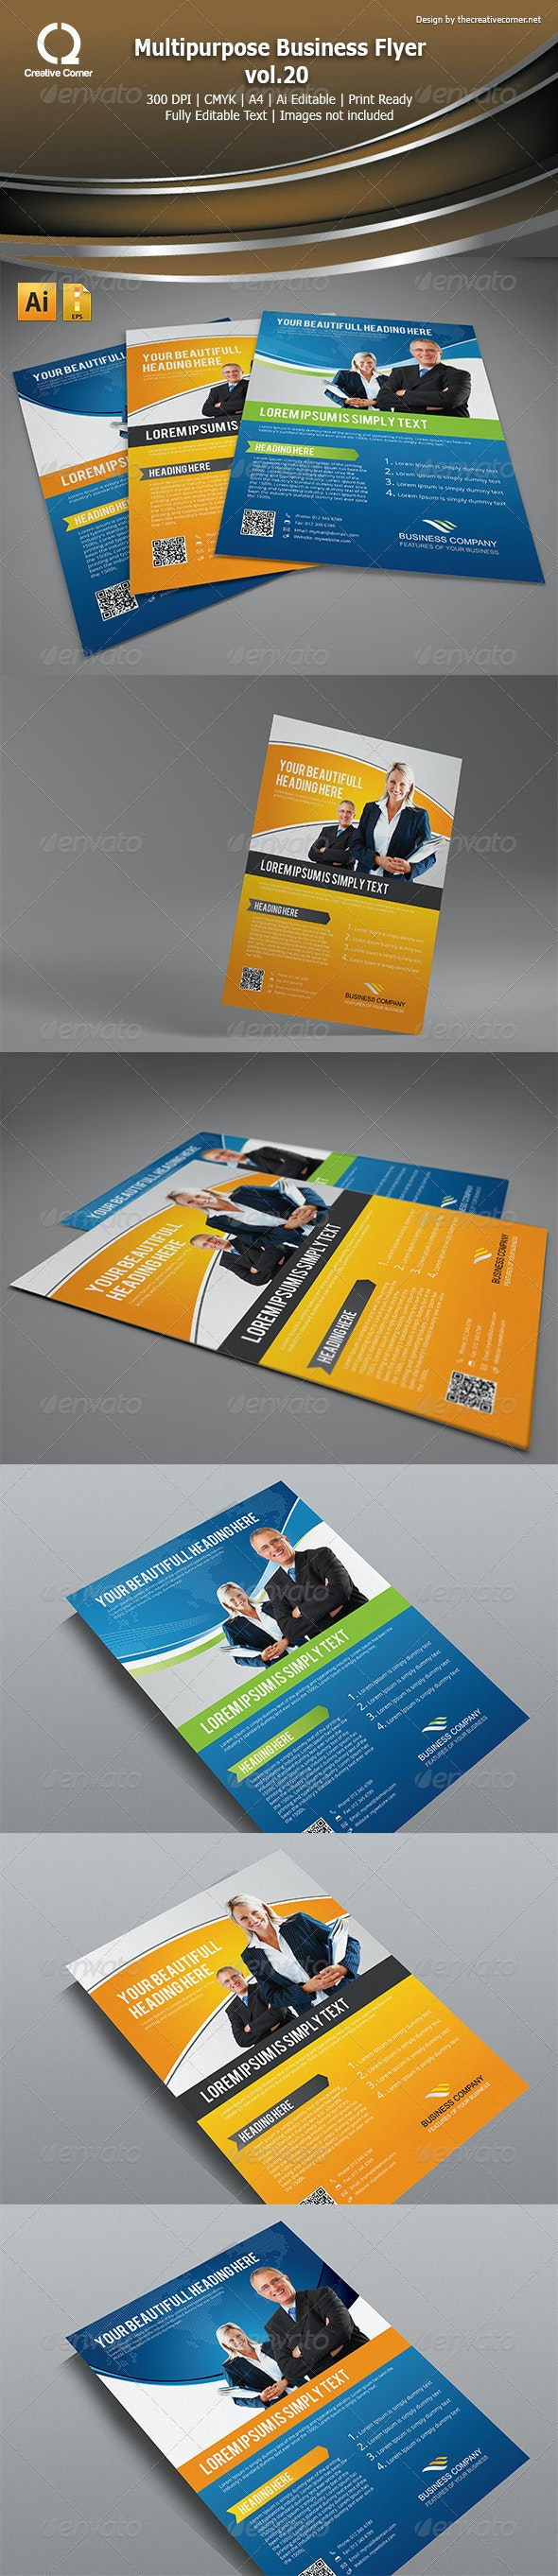 Multipurpose Business Flyer vol.20 - Corporate Flyers